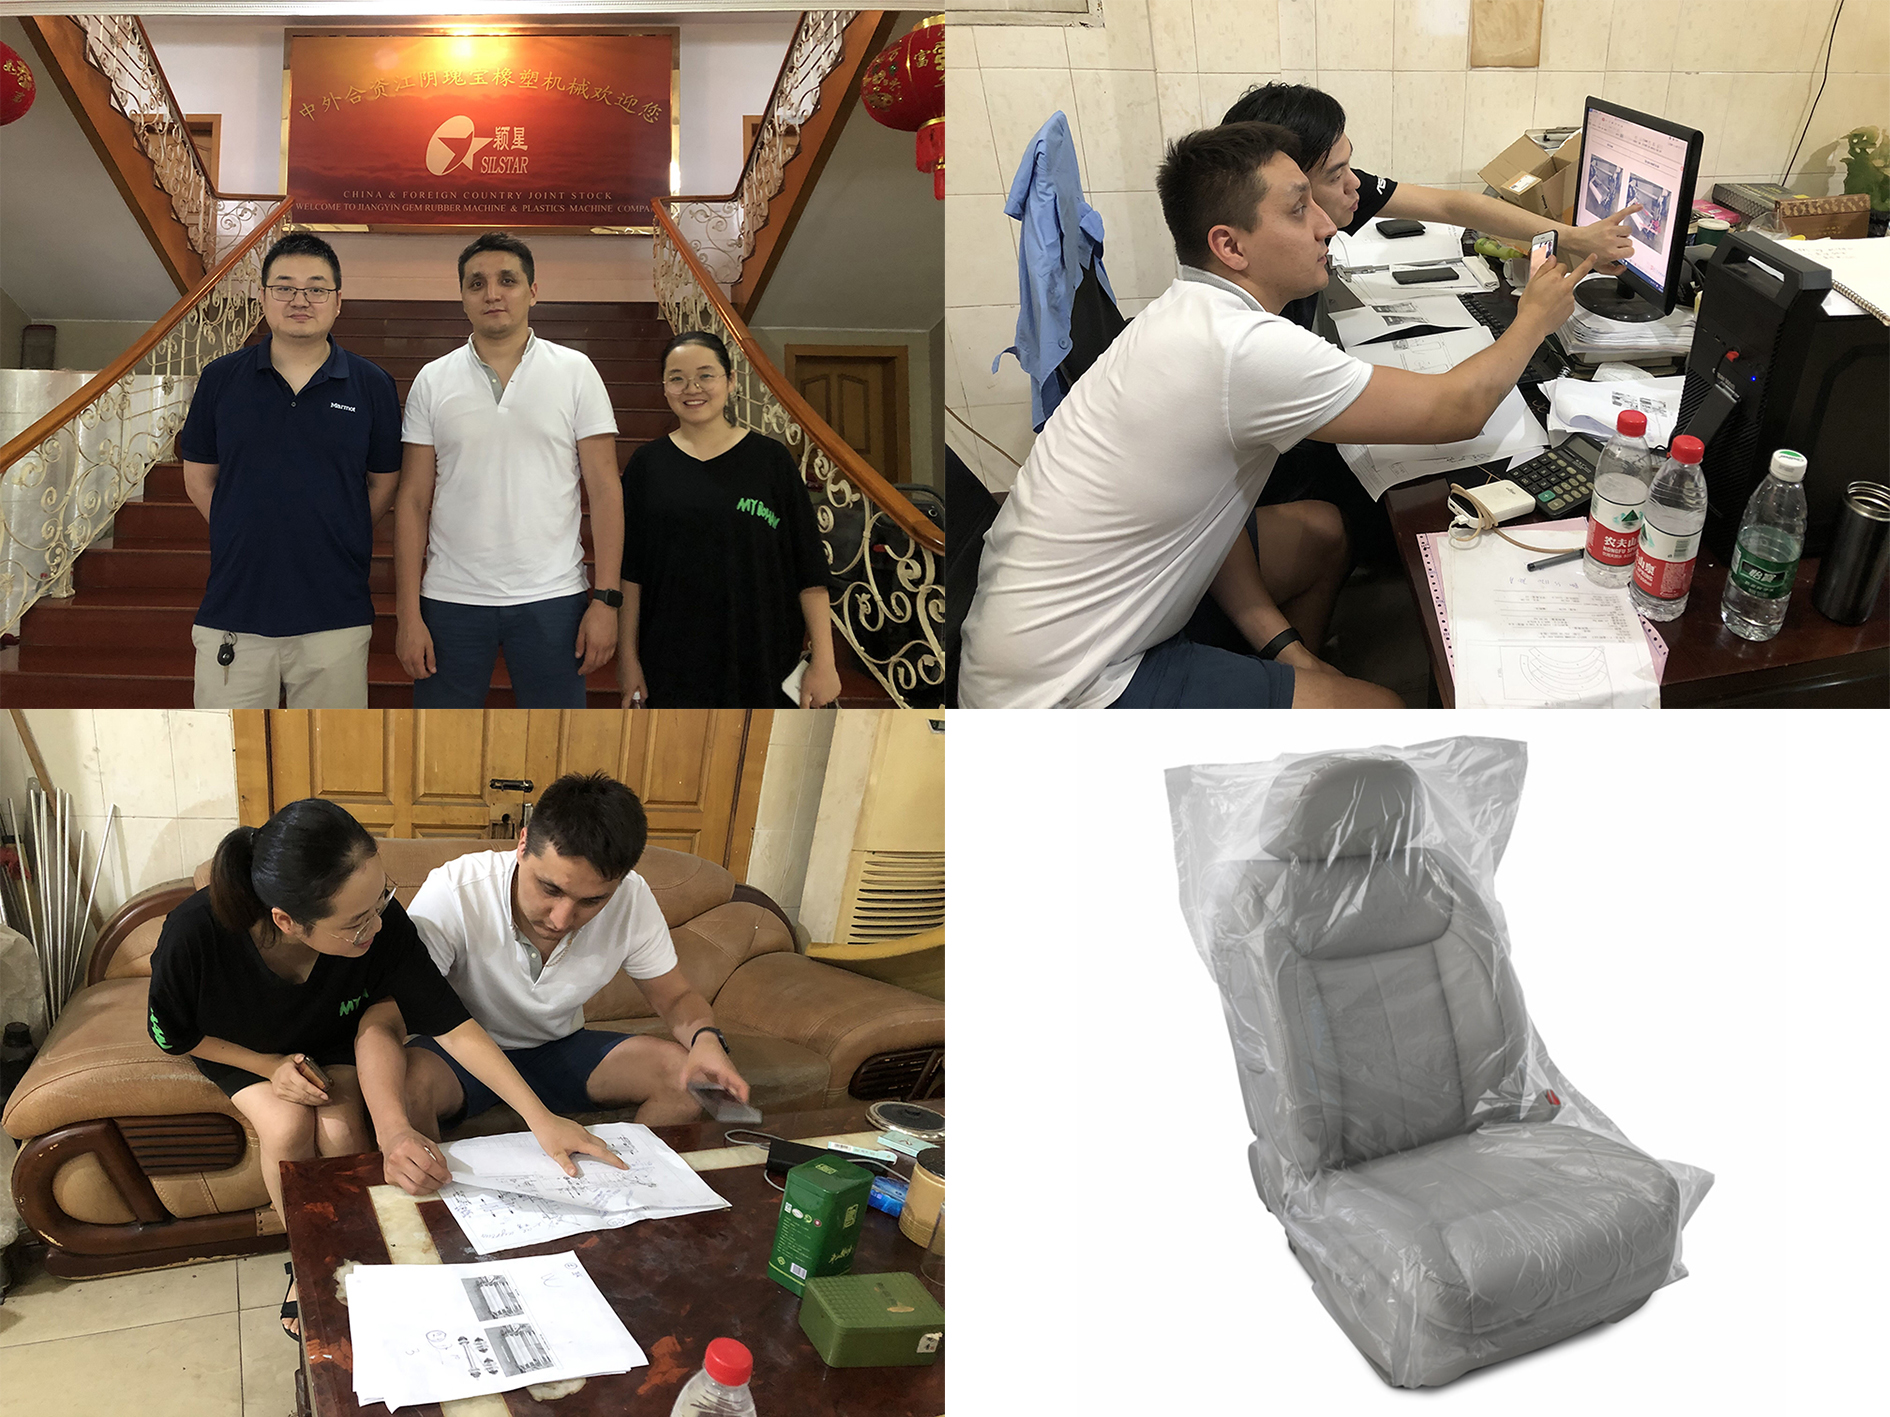 Russian customer came here to take part in the design of the rolling car seat cover machine!